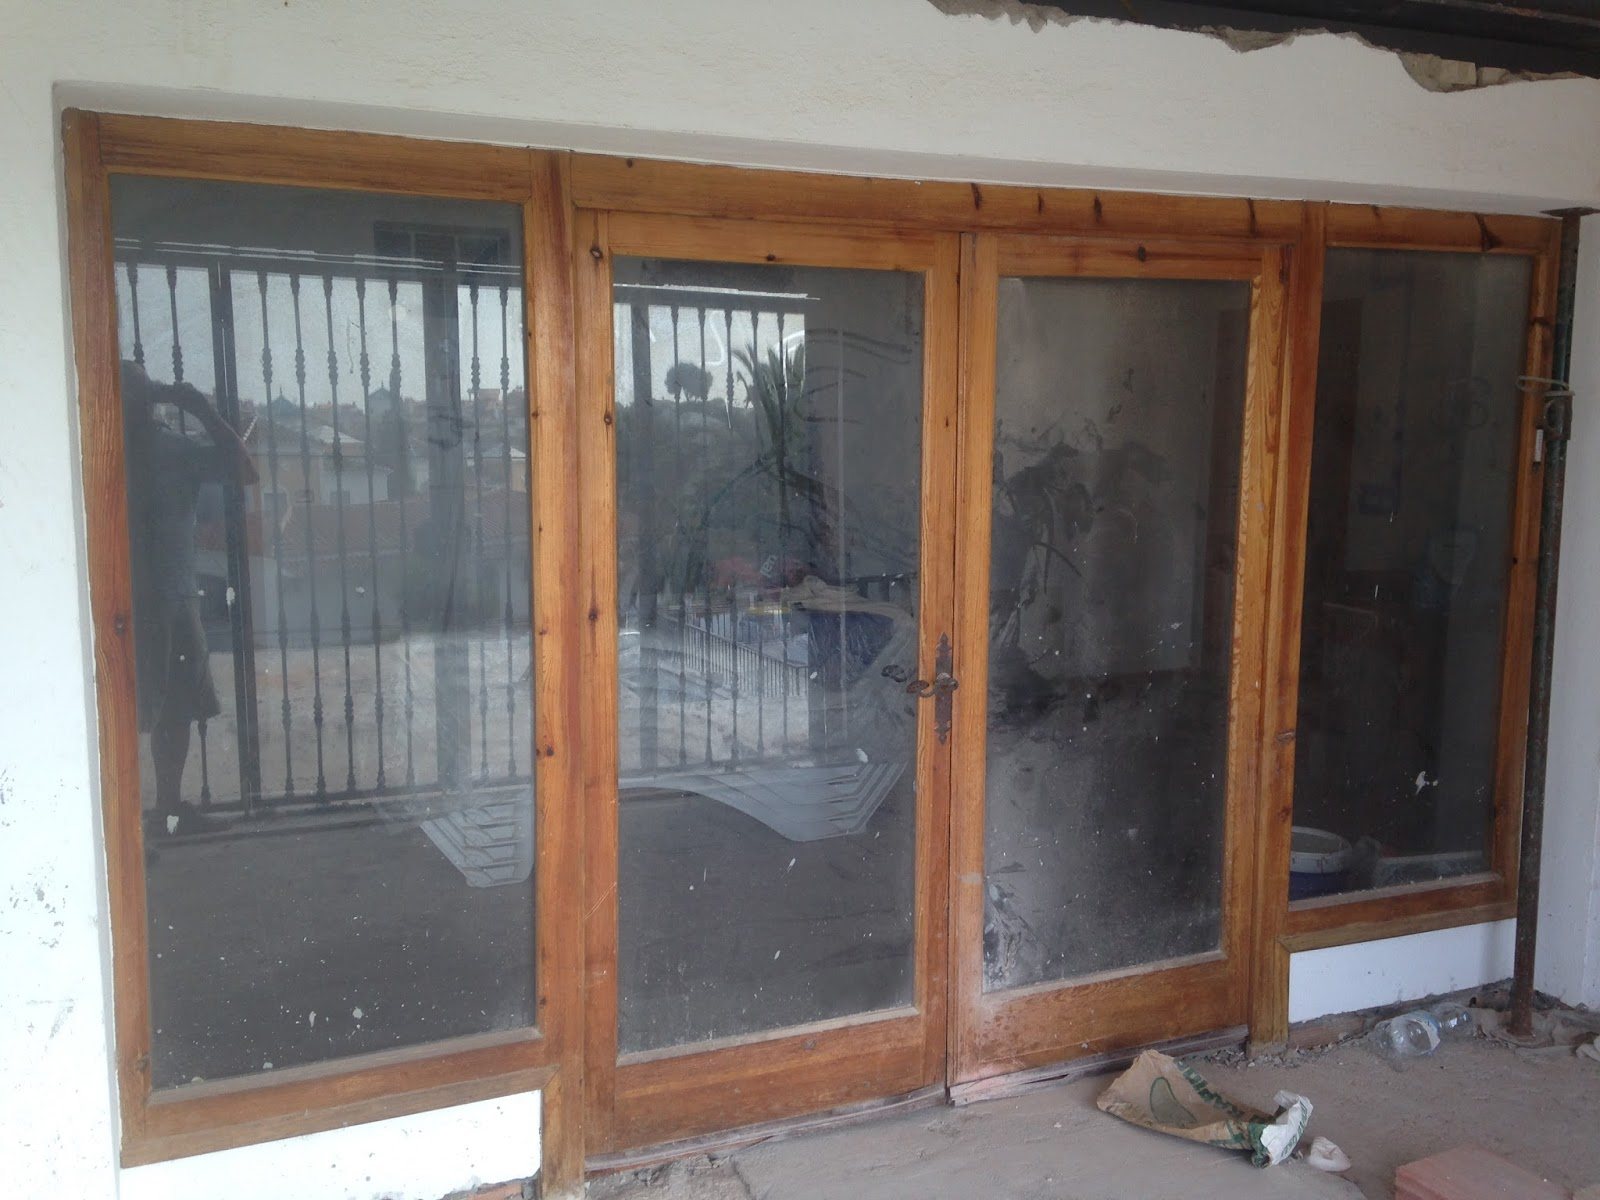 Digame for sale period patio doors for Patio doors for sale